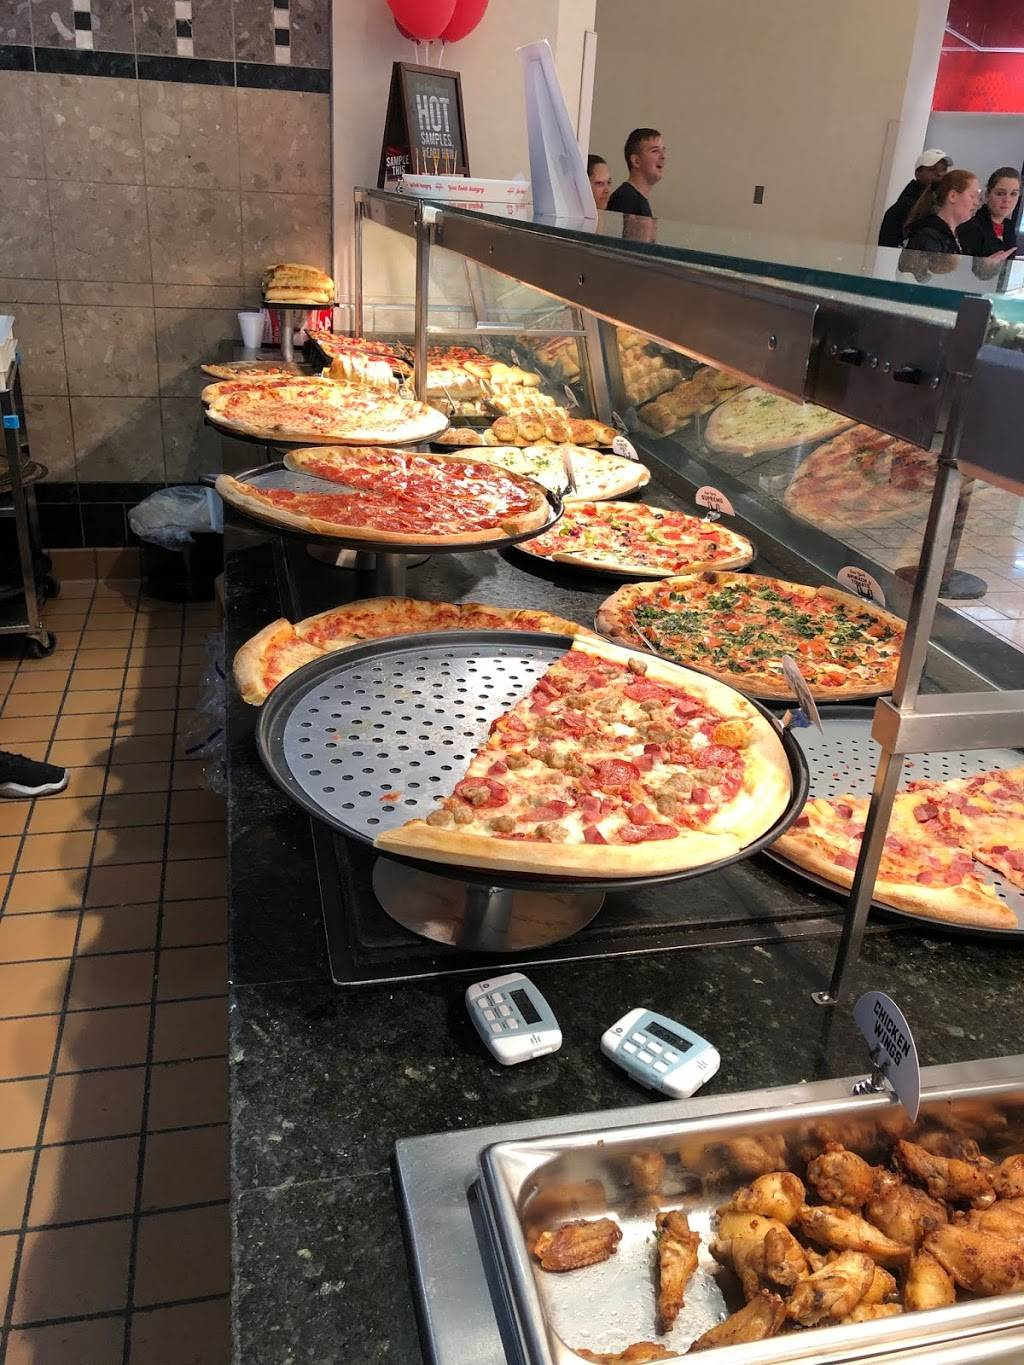 Sbarro   meal takeaway   300 Monticello Ave SUITE #305, Norfolk, VA 23510, USA   7575789765 OR +1 757-578-9765